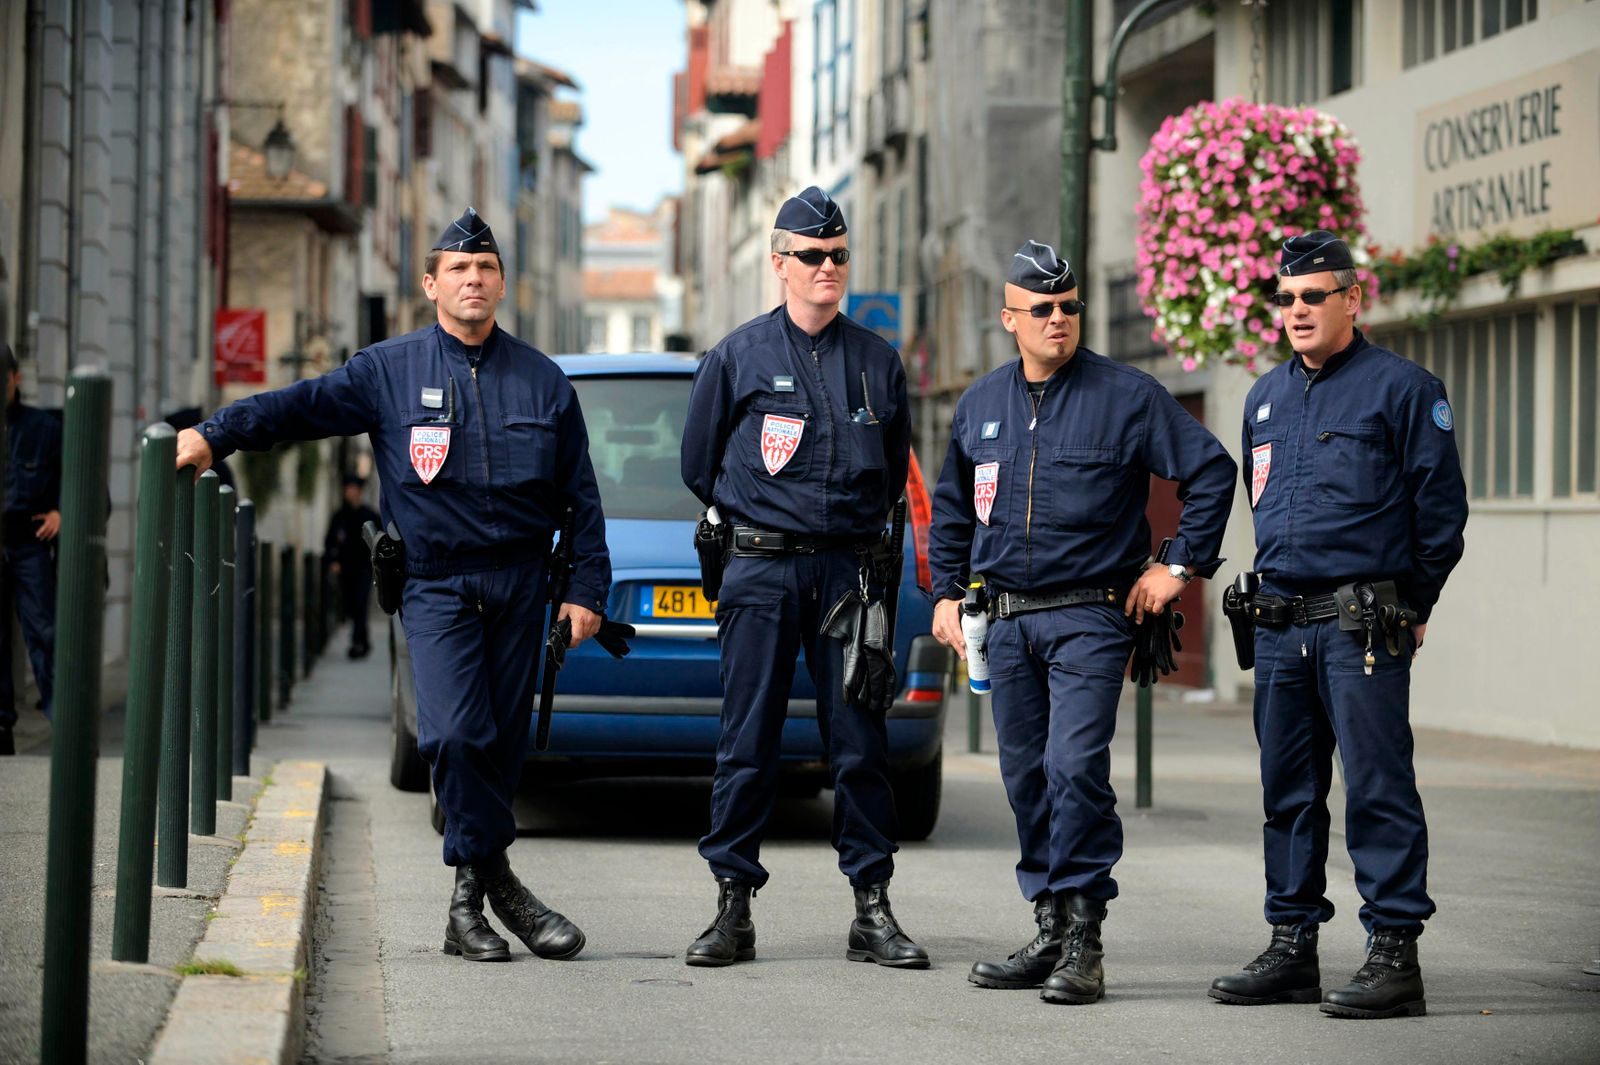 French police stand guard outside the headquarters of pro-Basque independence party Batasuna in Bayonne